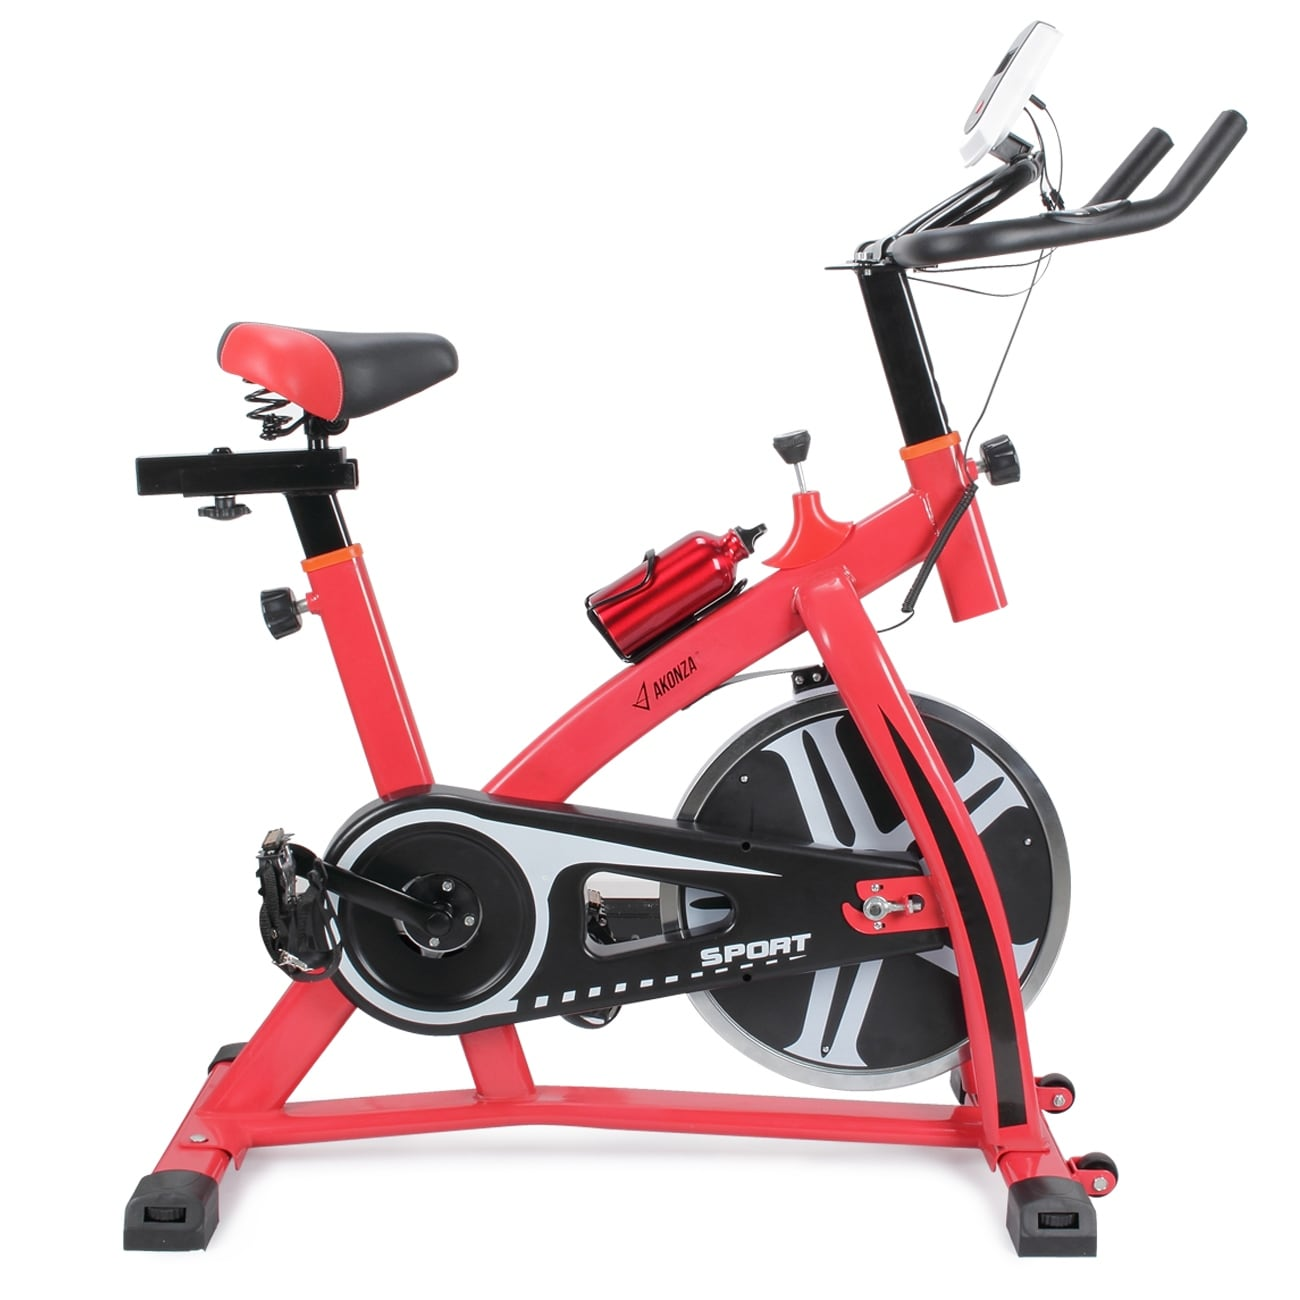 Red exercise bike stationary cycling training home gym adjustable